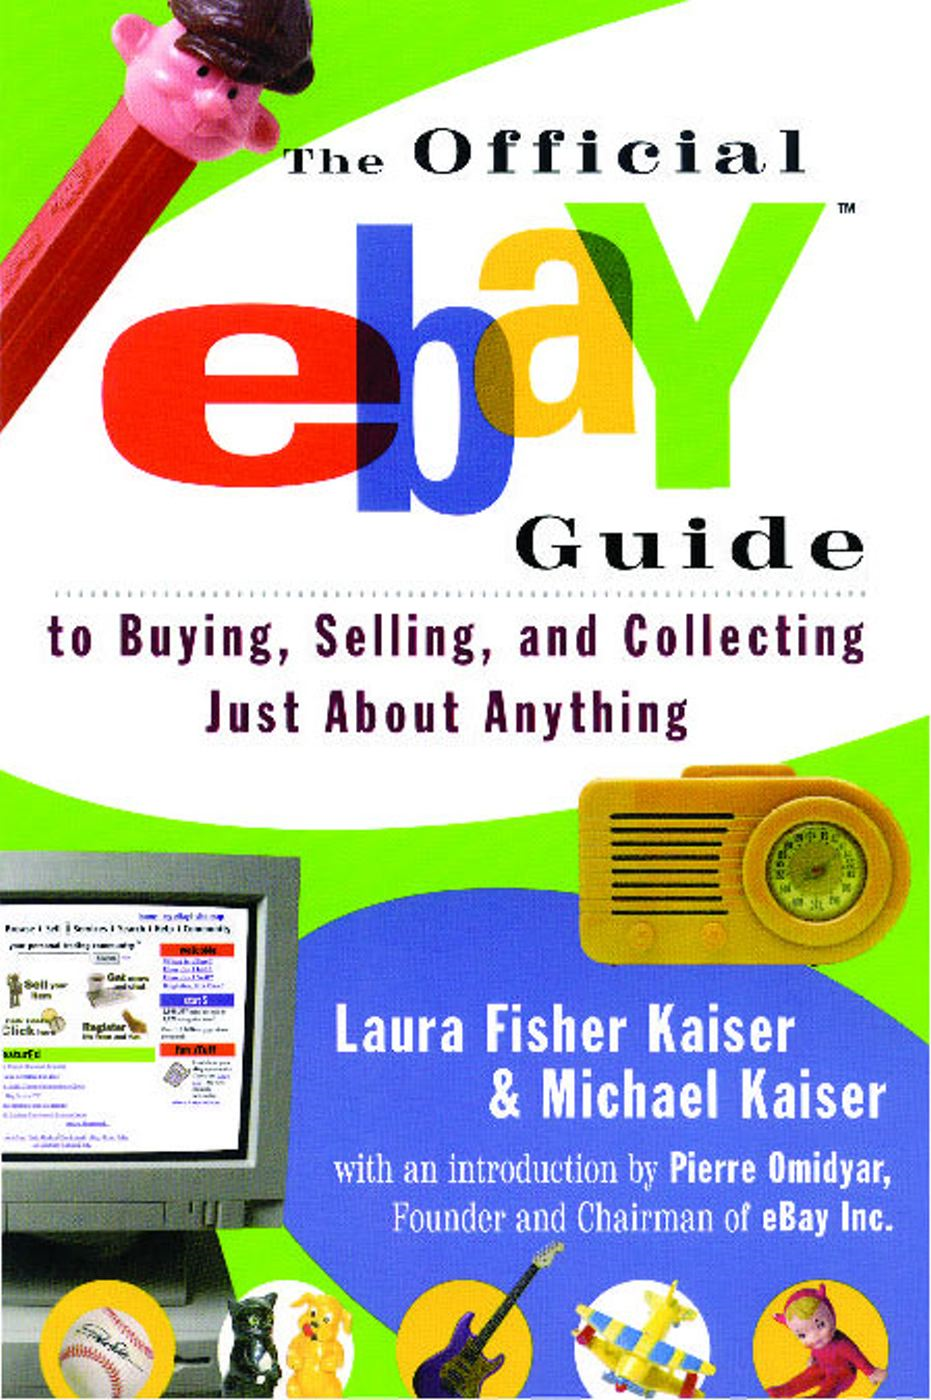 The Official eBay Guide to Buying, Selling, and Collecting Just About Anything By: Laura Fisher Kaiser,Michael Kaiser,Pierre Omidyar